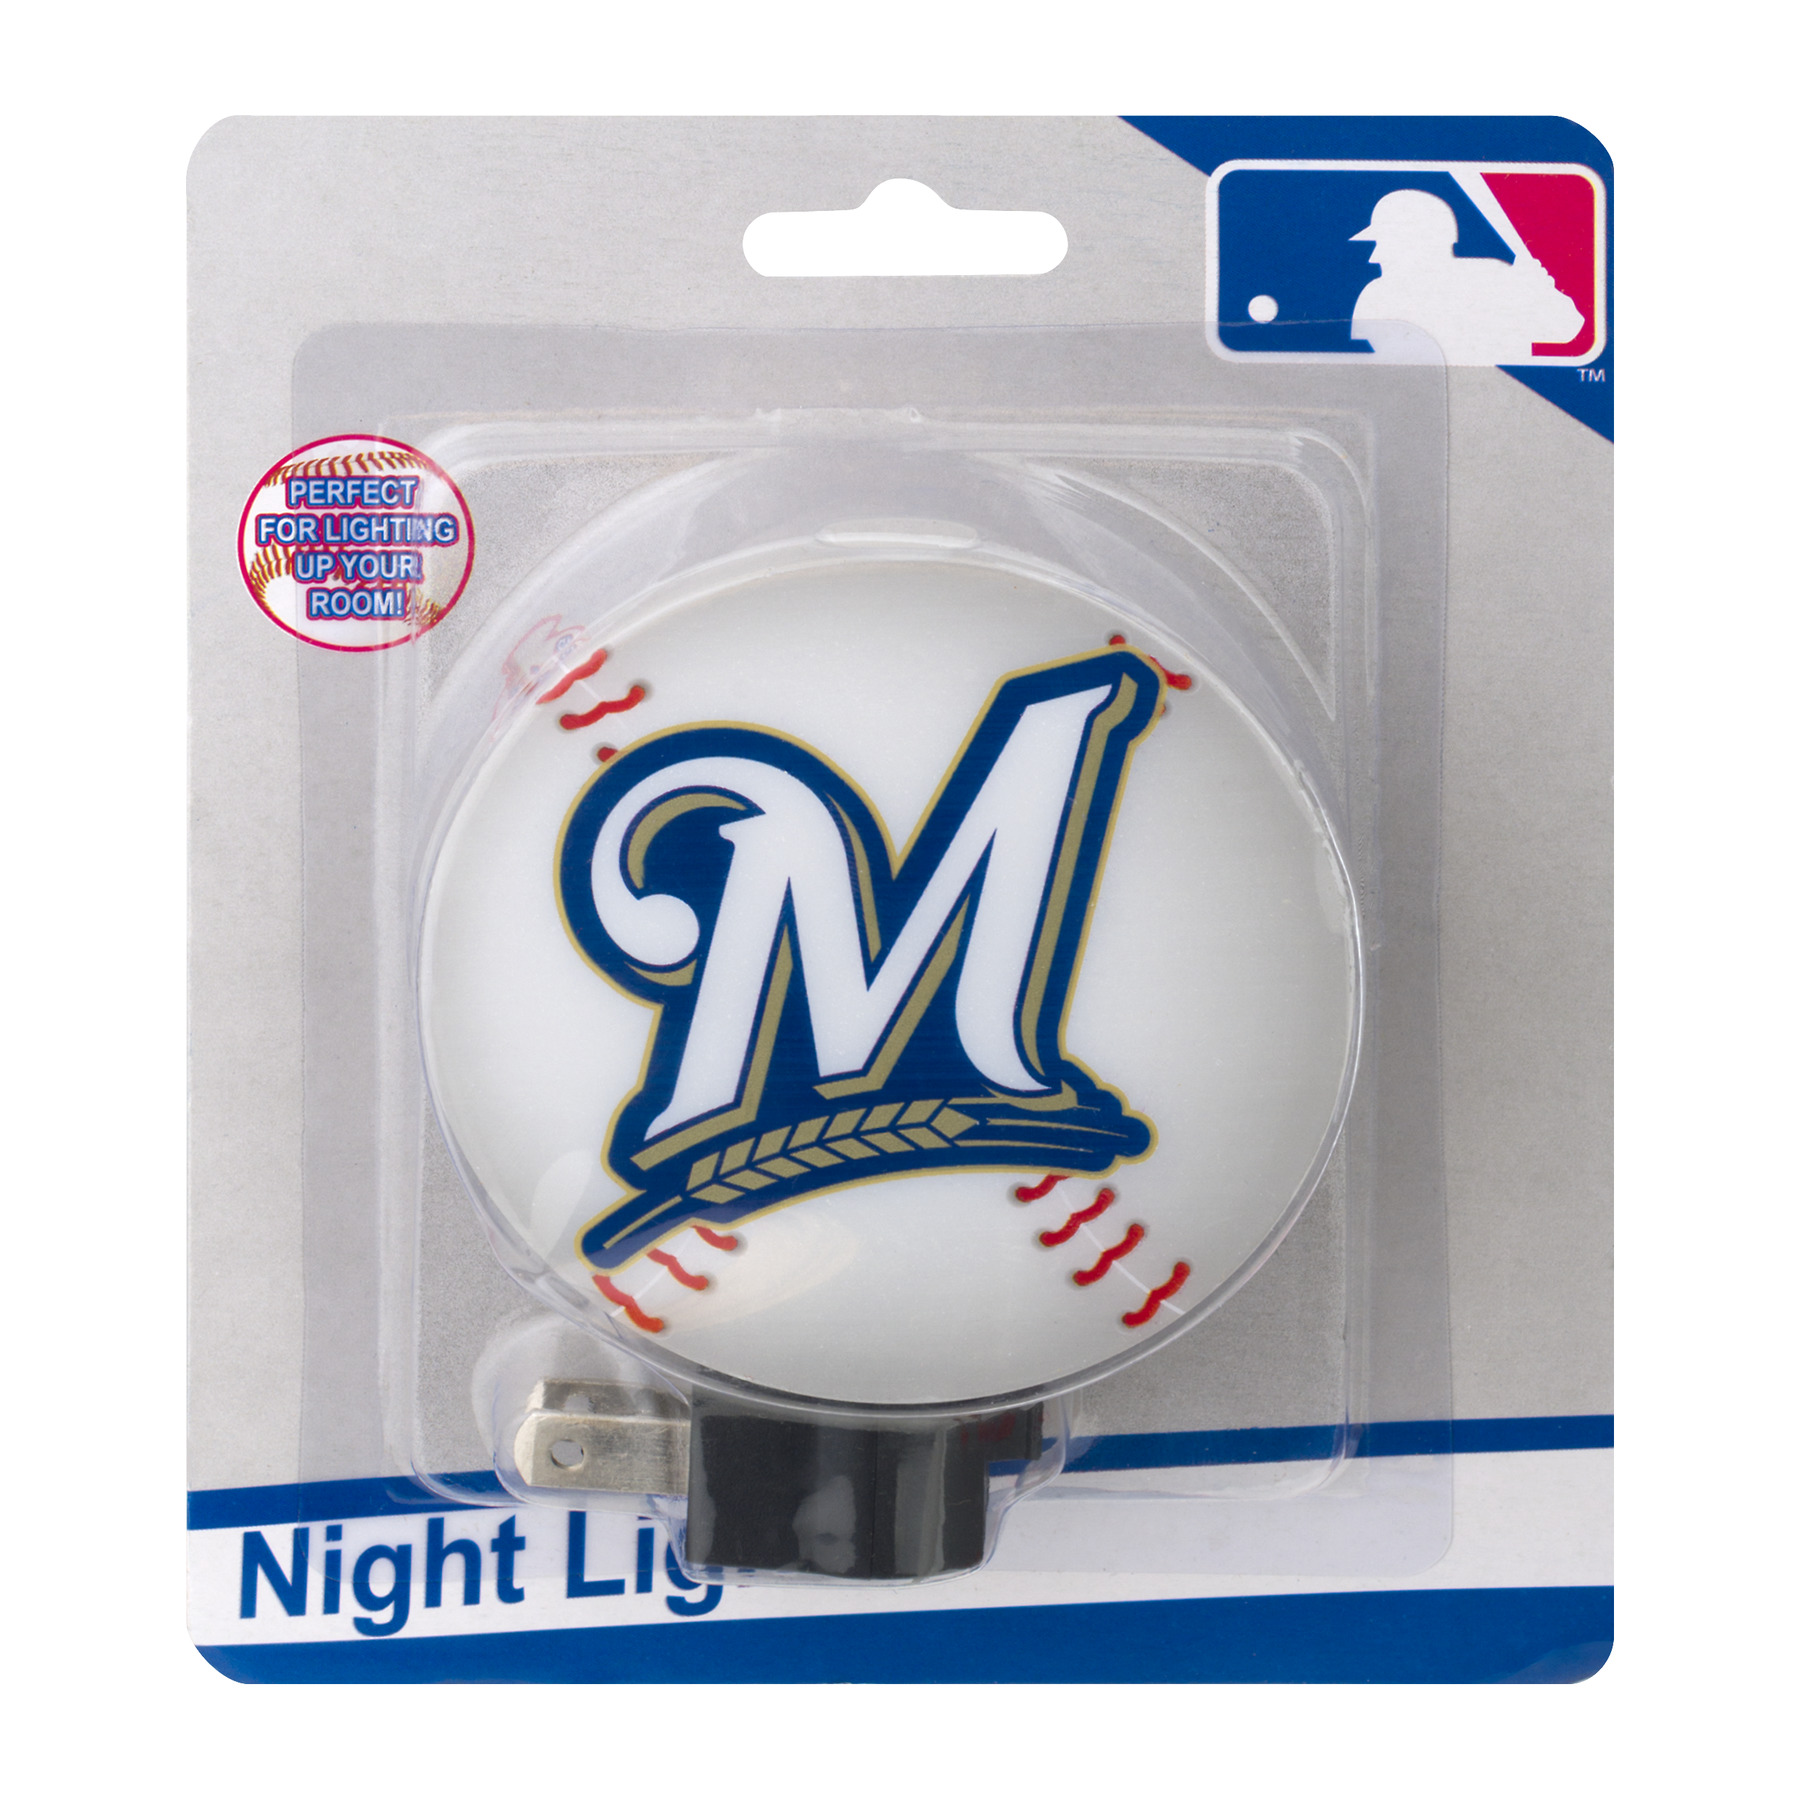 MLB Night Light Milwaukee Brewers, 1.0 CT